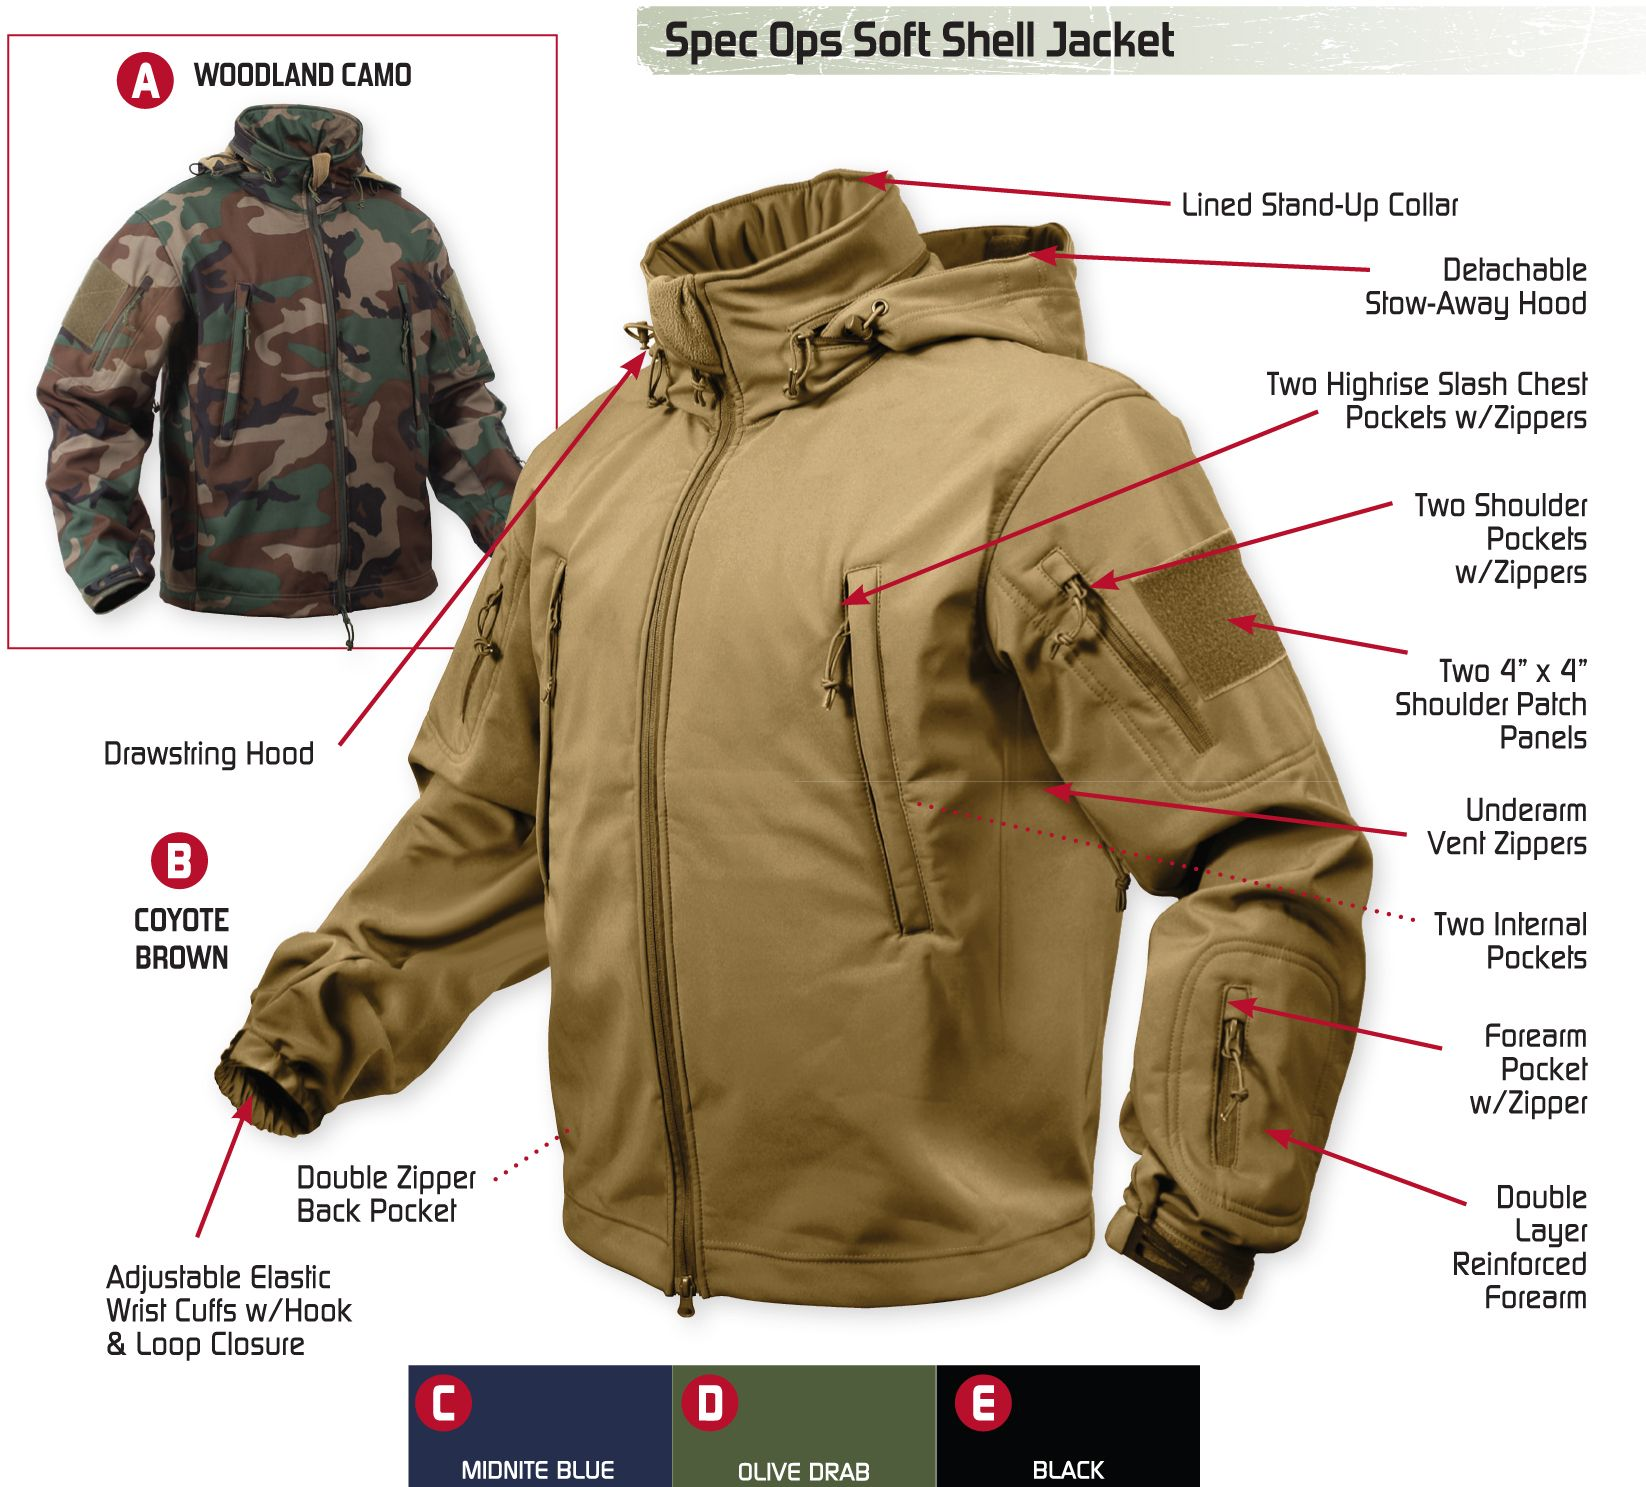 Sports & Entertainment The Cheapest Price Us Uk M65 Outdoor Windbreaker Jacket With Inner Soft Shell Men Windbreaker Jacket Combat Tactical Military Thicken Winter Jacket To Produce An Effect Toward Clear Vision Camping & Hiking